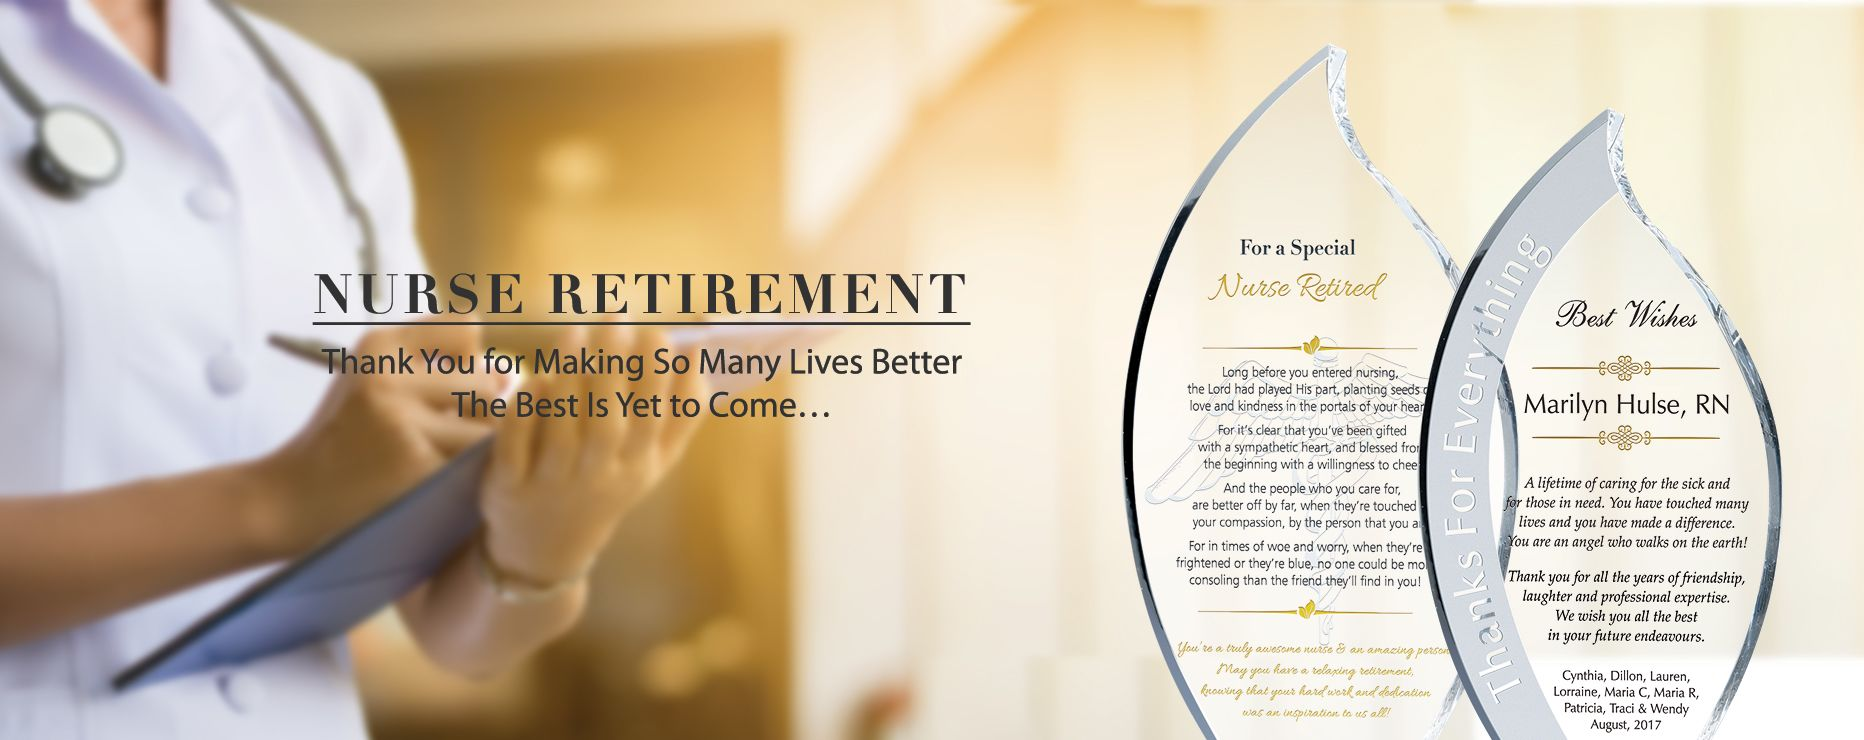 Nurse Retirement Quotes Messages And Plaque Wording Ideas Diy Awards